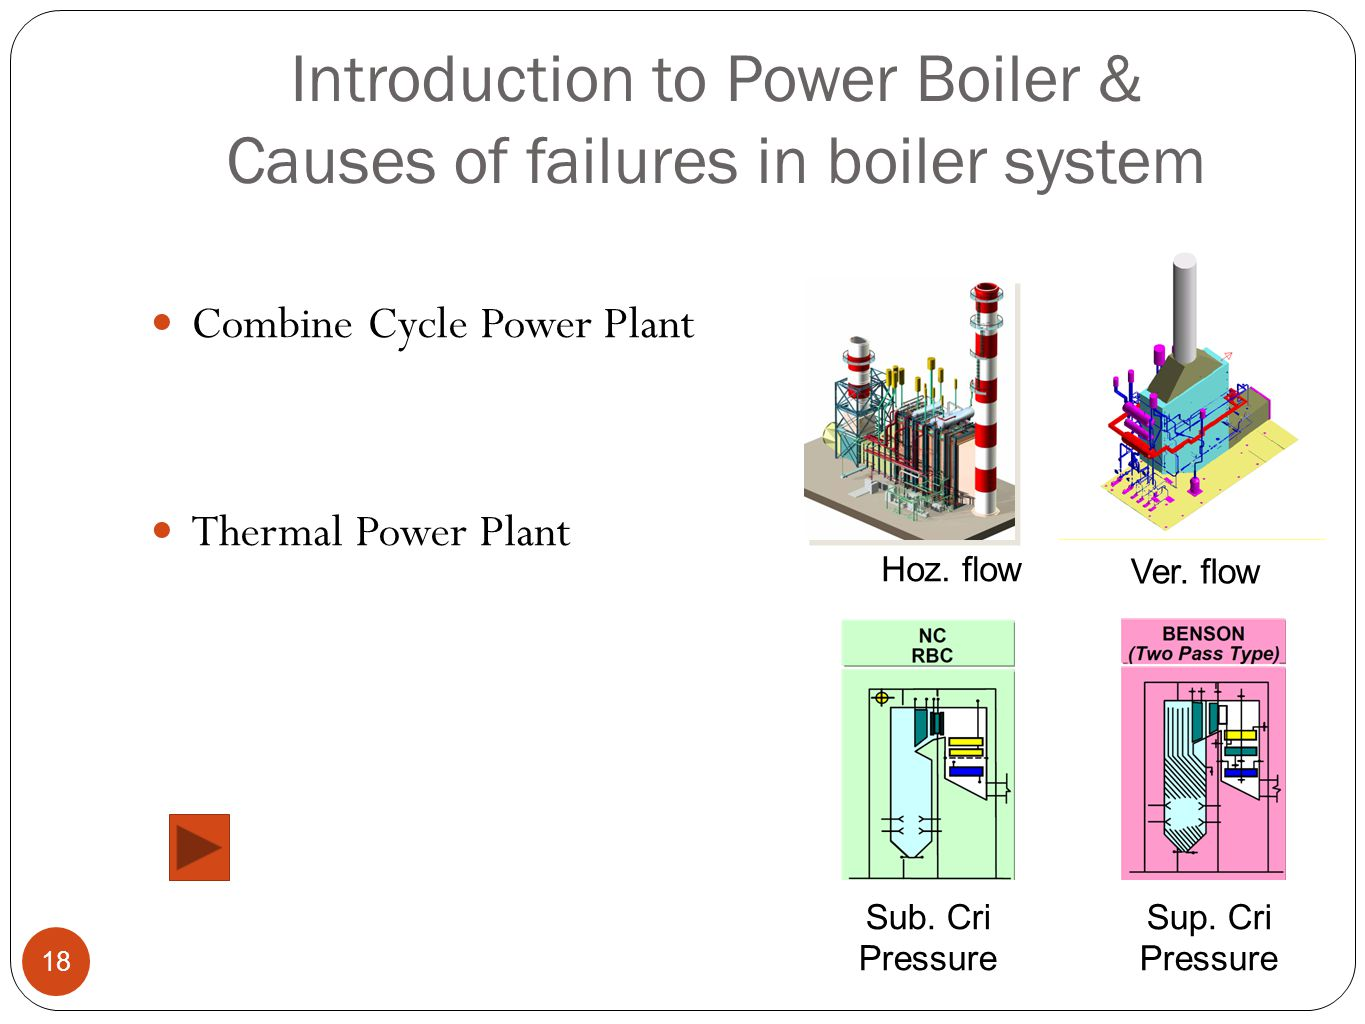 Introduction to Power Boiler & Causes of failures in boiler system